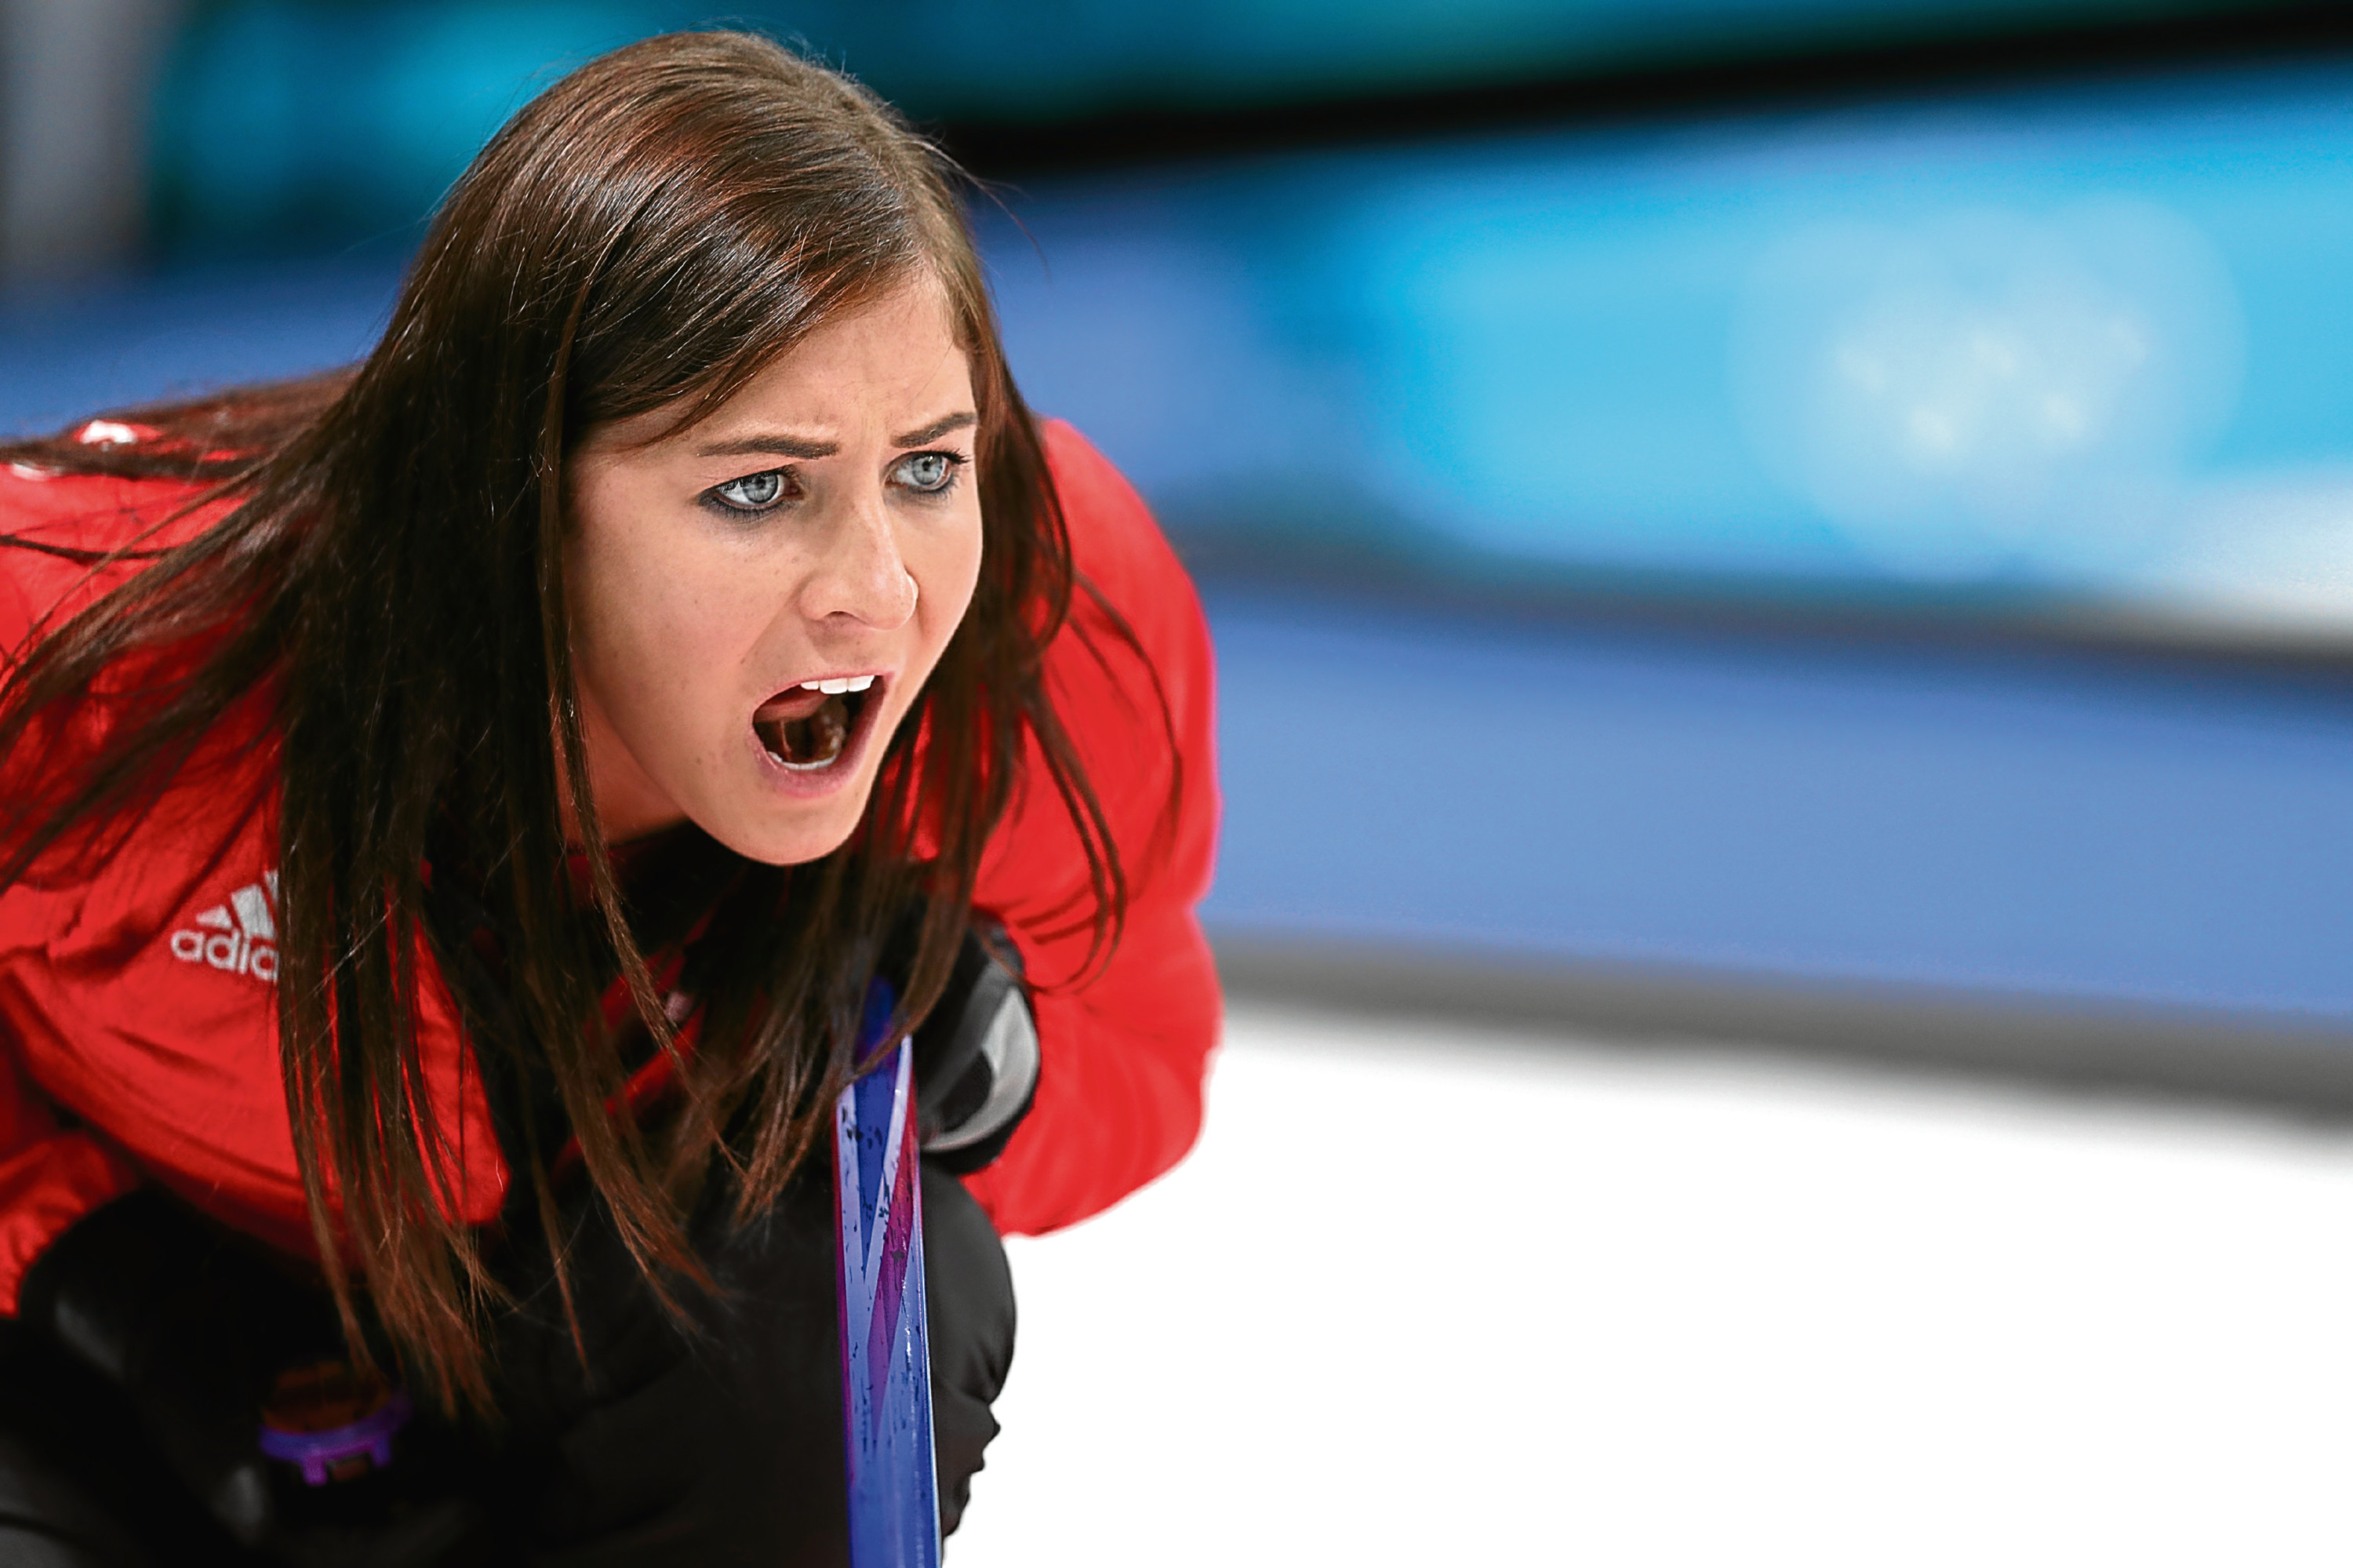 GANGNEUNG, SOUTH KOREA - FEBRUARY 19: Eve Muirhead of Great Britain directs her team during Women's Round Robin Session 9 on day 10 of the PyeongChang 2018 Winter Olympic Games at Gangneung Curling Centre on February 19, 2018 in Pyeongchang-gun, South Korea. (Photo by Maddie Meyer/Getty Images)